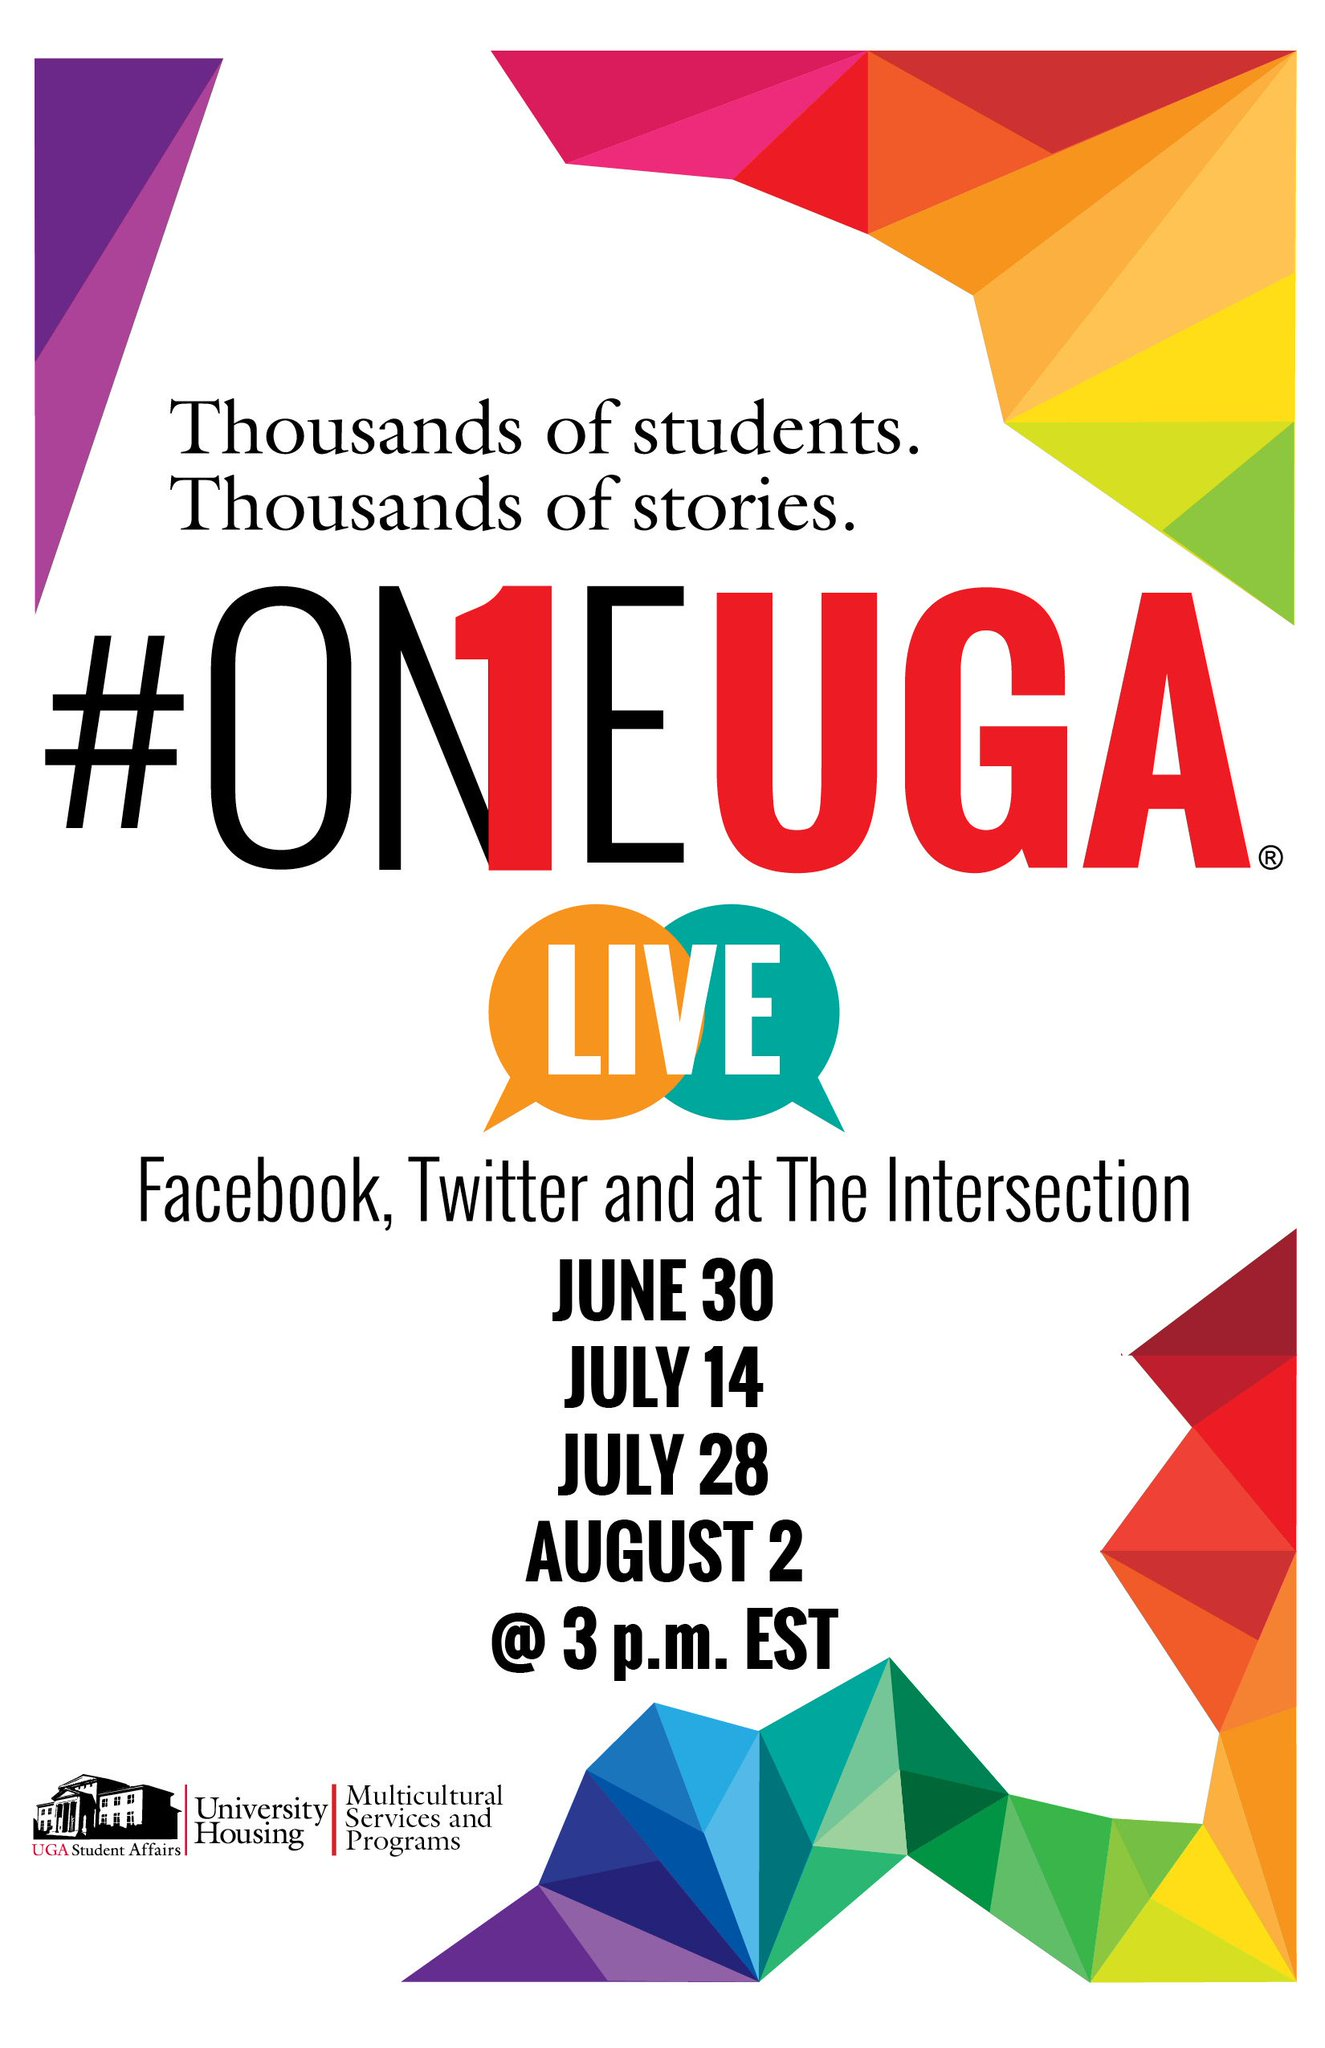 Hey @UGA20ATL & @UGAClassOf2020, help us spread the word about the #OneUGA chat this Thursday! Free swag & more https://t.co/Y42rDXZesB